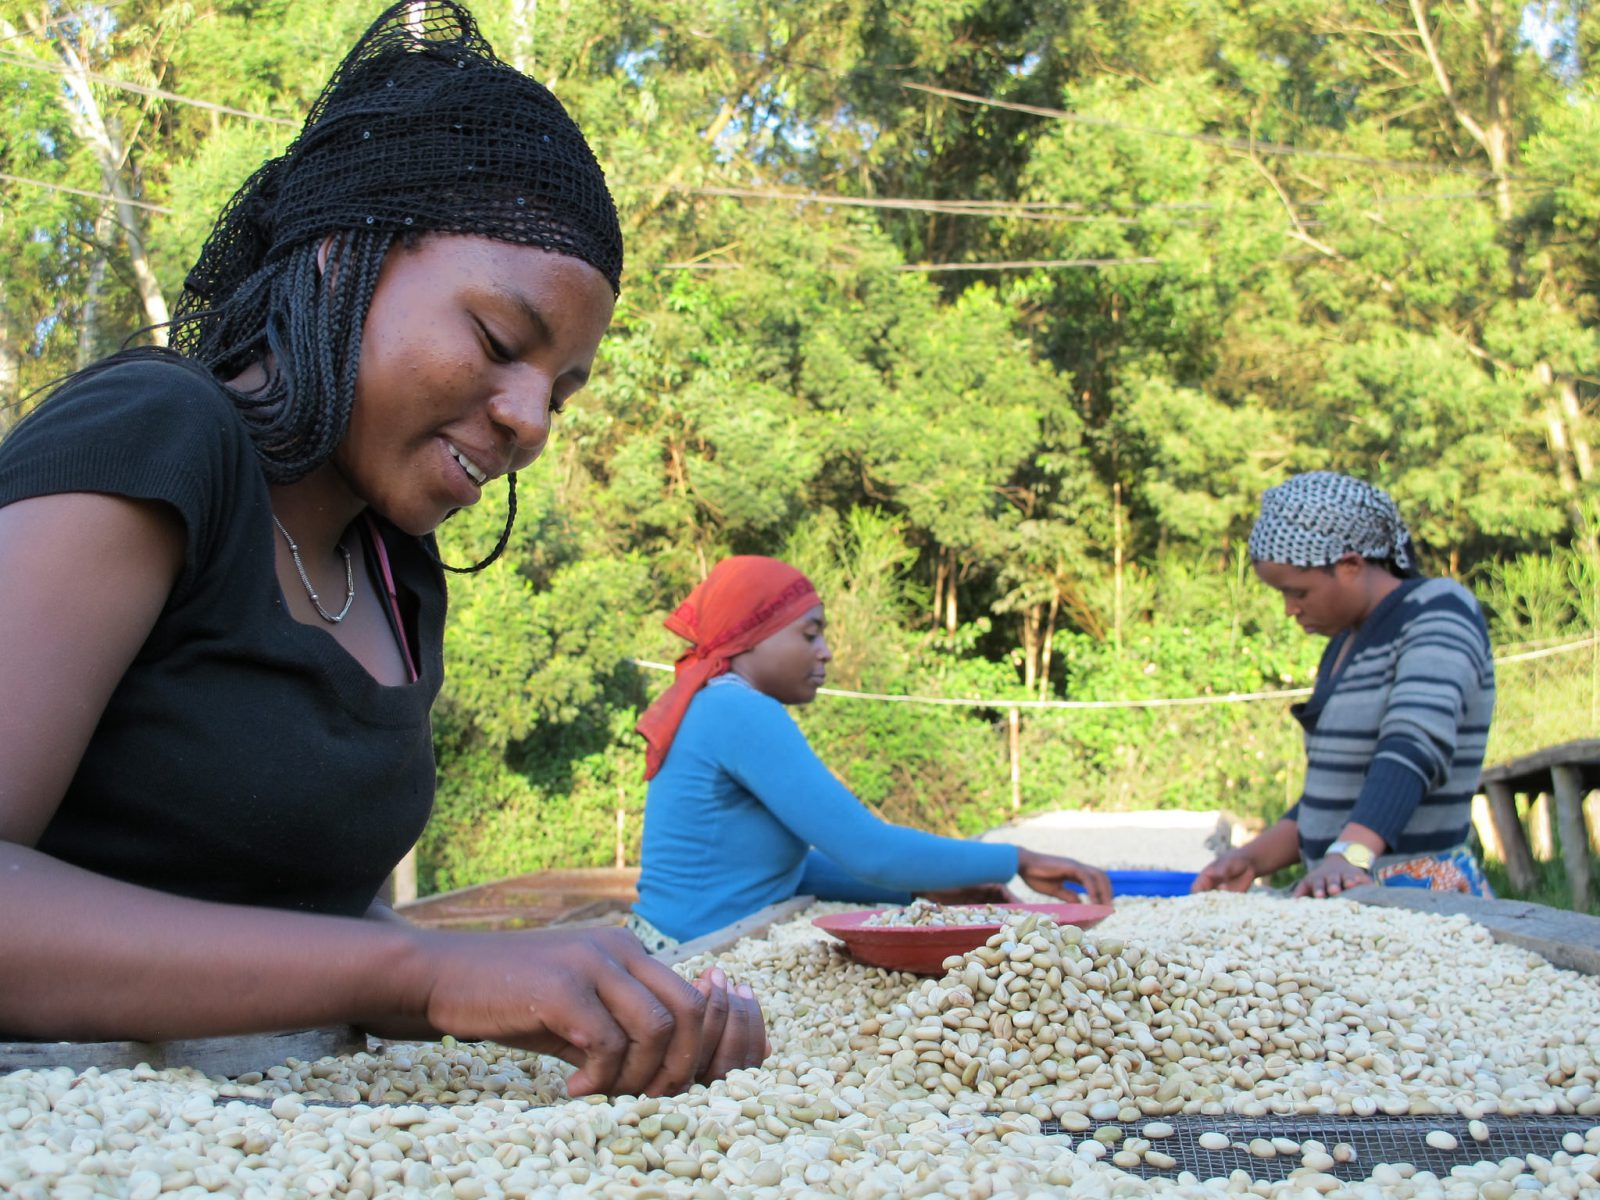 Coffee-sorters-at-Maraba-smallholder-coffee-cooperative-in-Butare-Rwanda.-Credit-Rainforest-Alliance-1.jpg